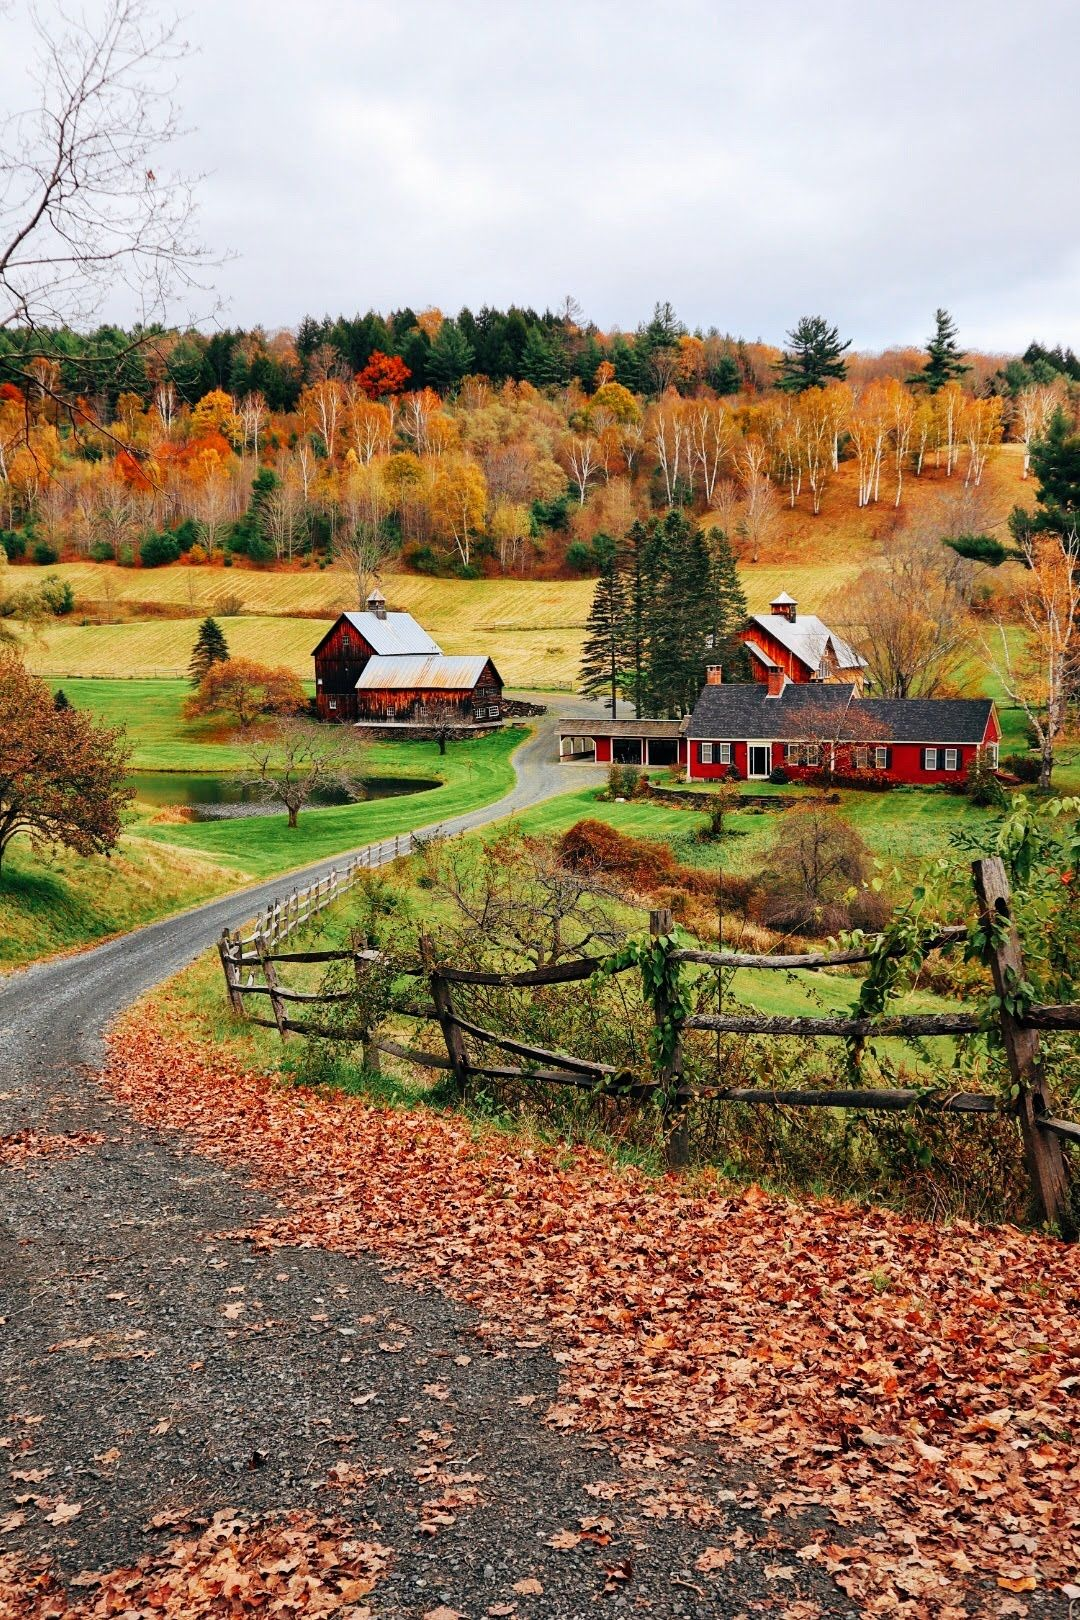 25 fun fall things to do in new england